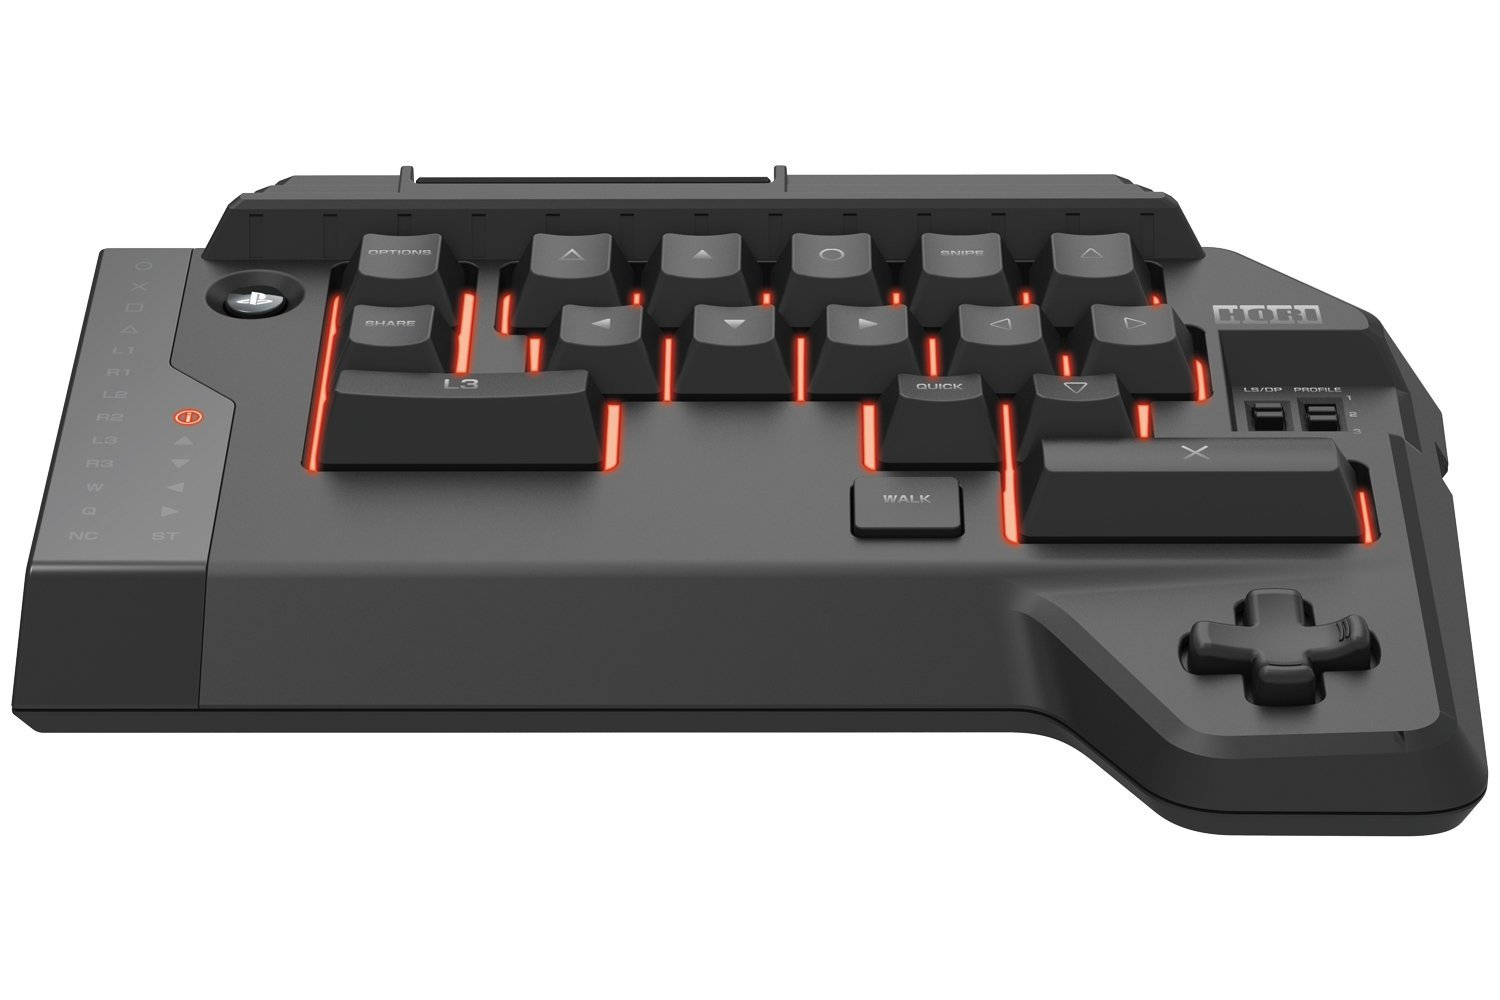 officially licensed ps mouse keypad controller revealed amazon uk